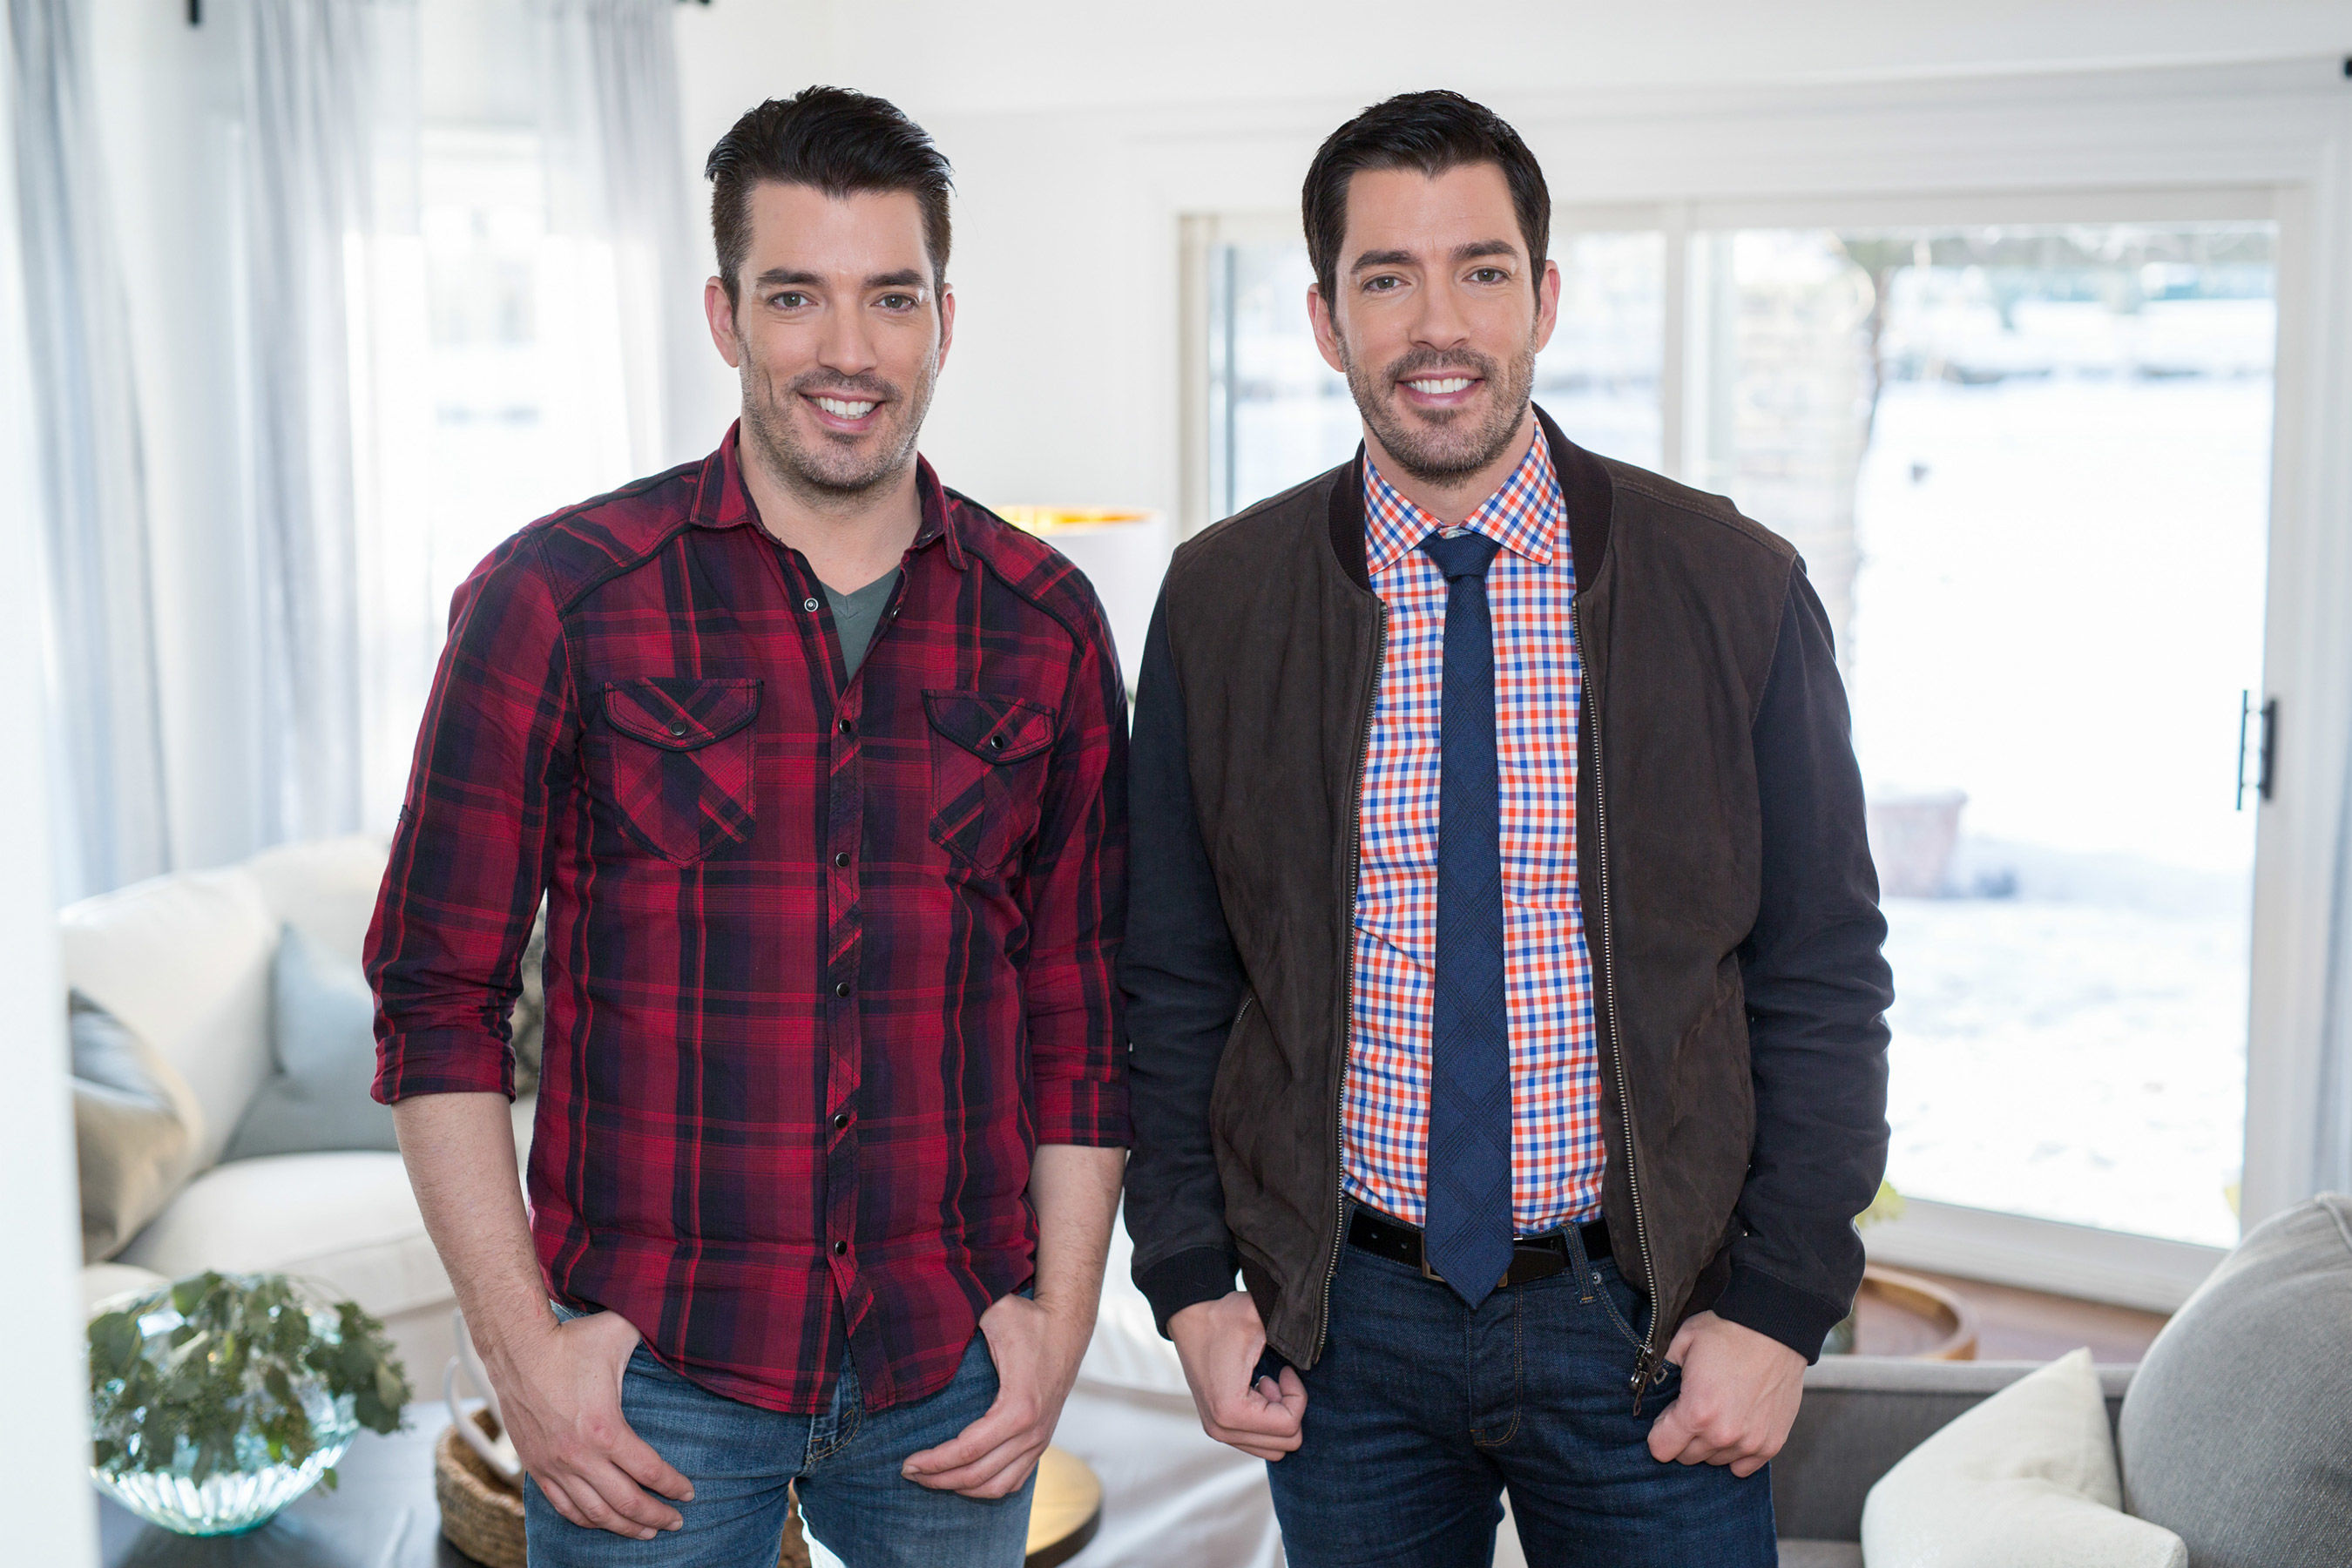 Property Brothers' Drew and Jonathan Scott Announce New HGTV Show Making Over 'Forever Homes'